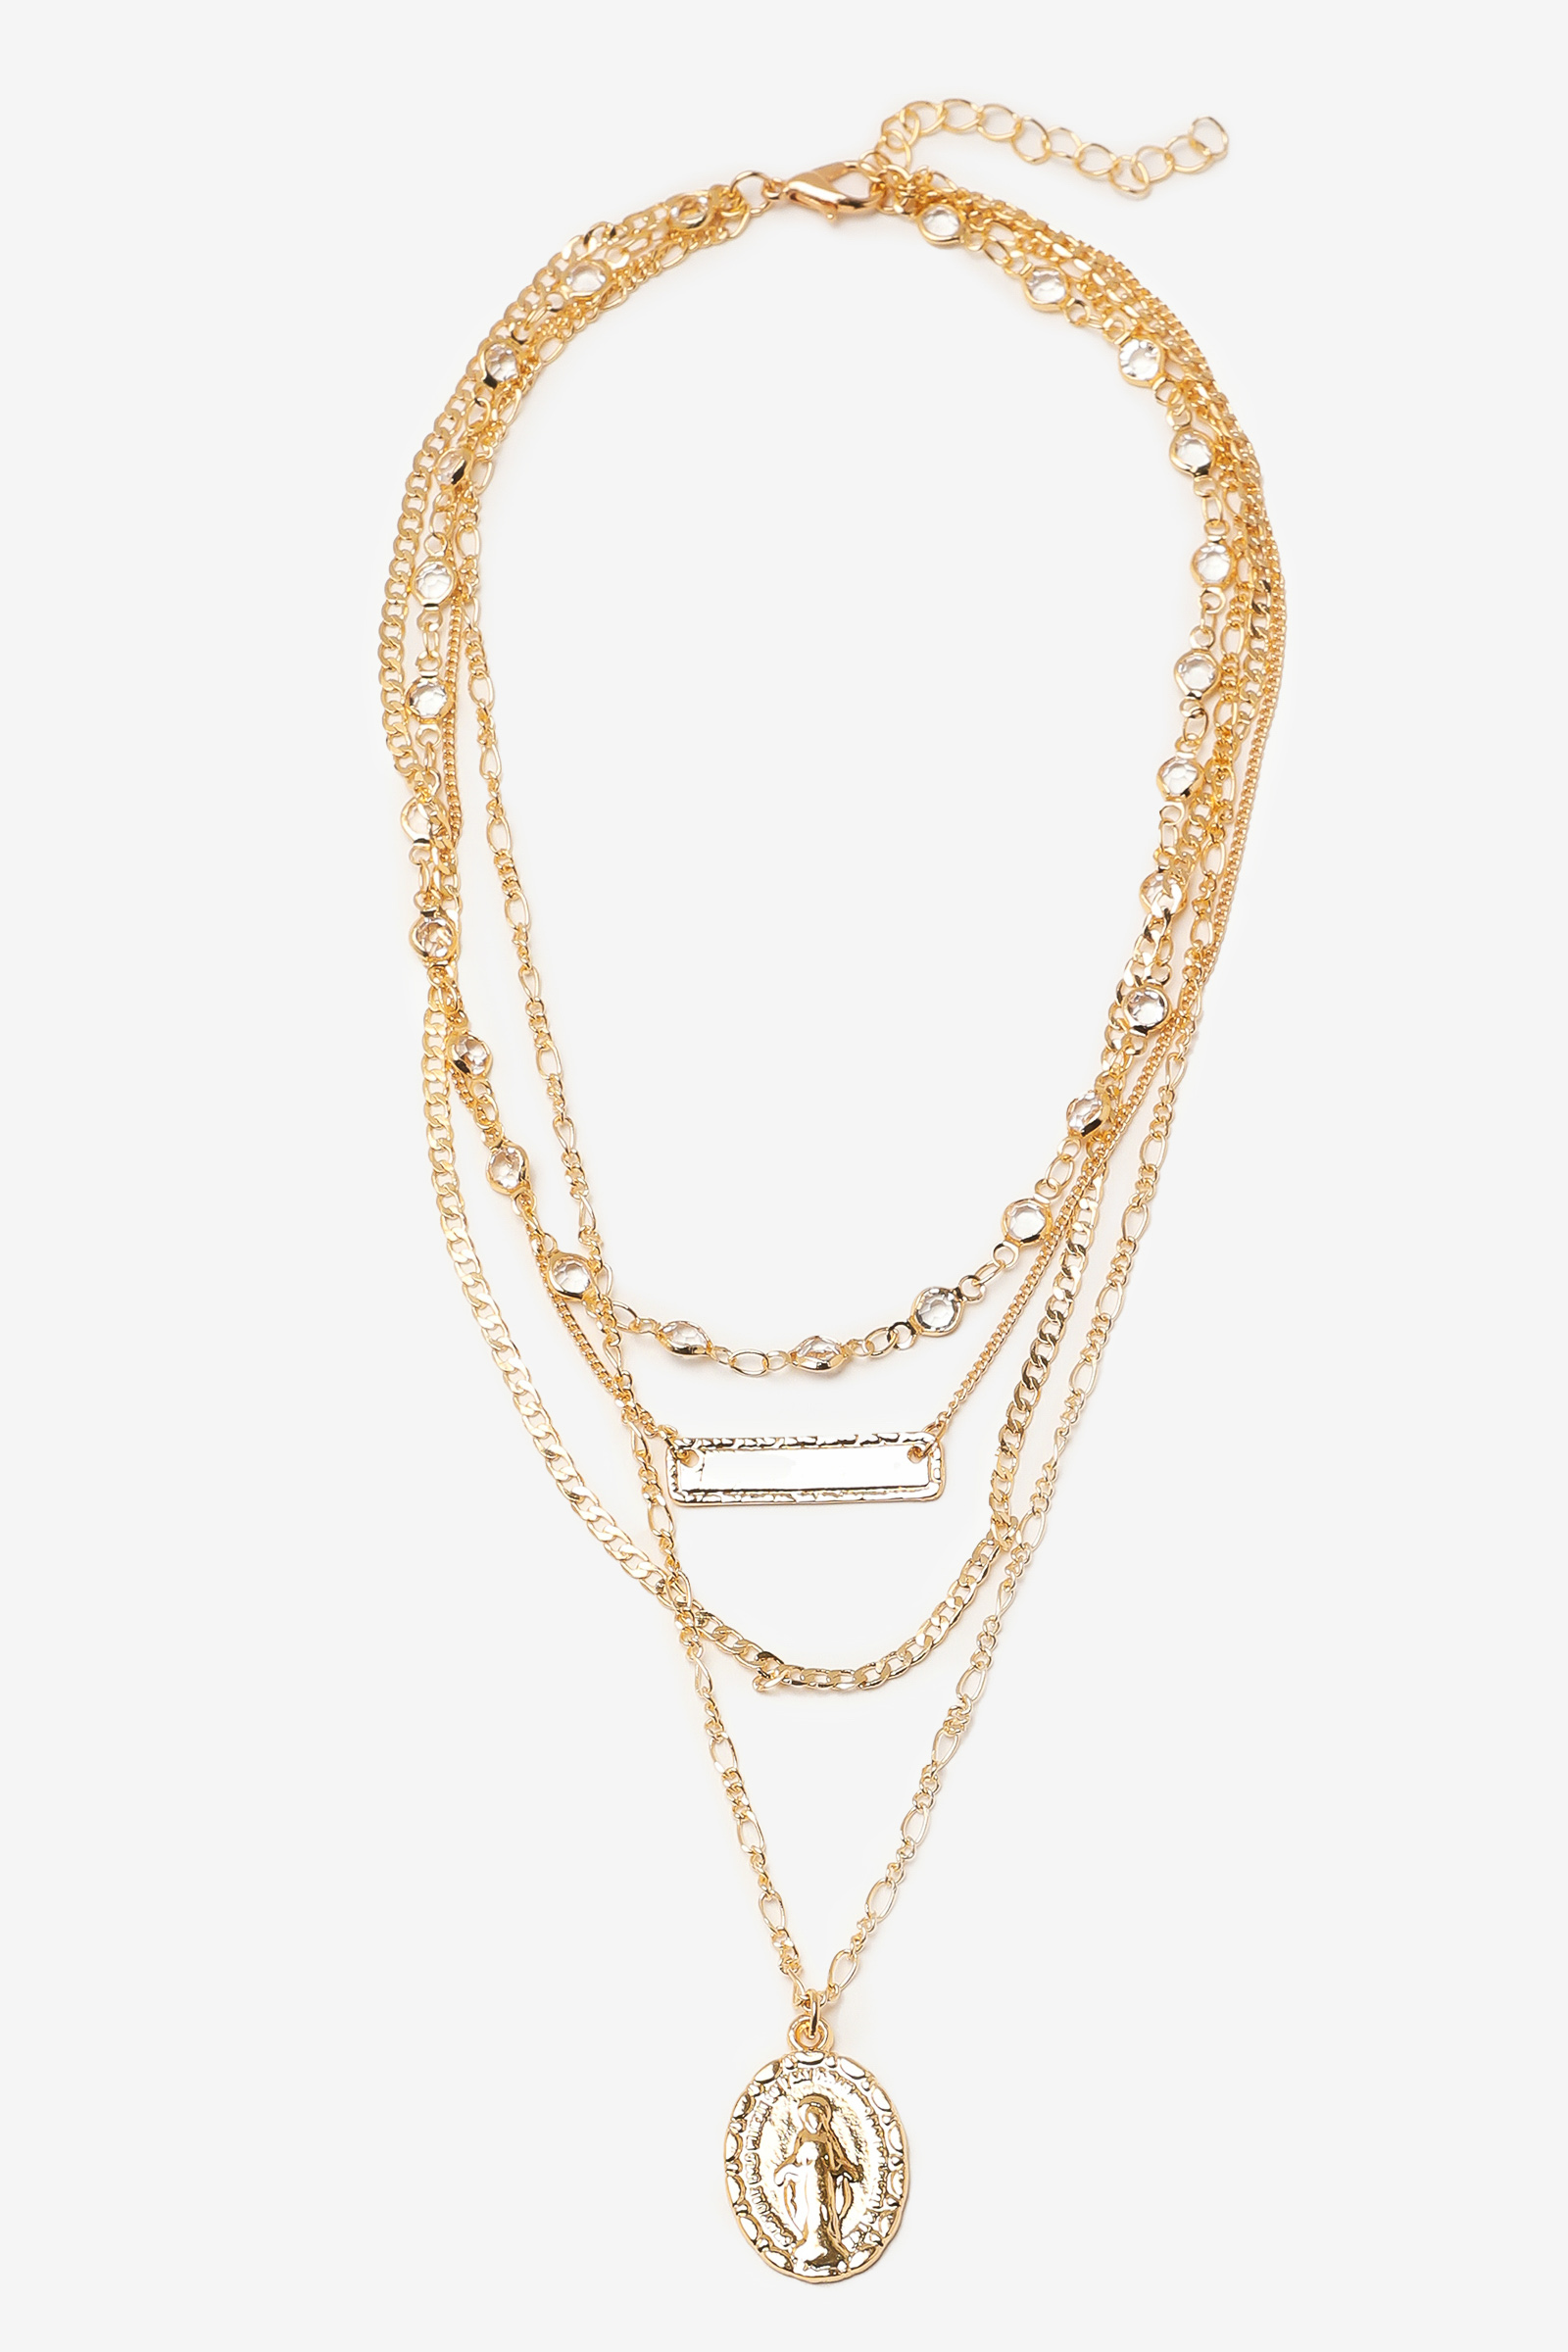 Layered Necklace with Pendant